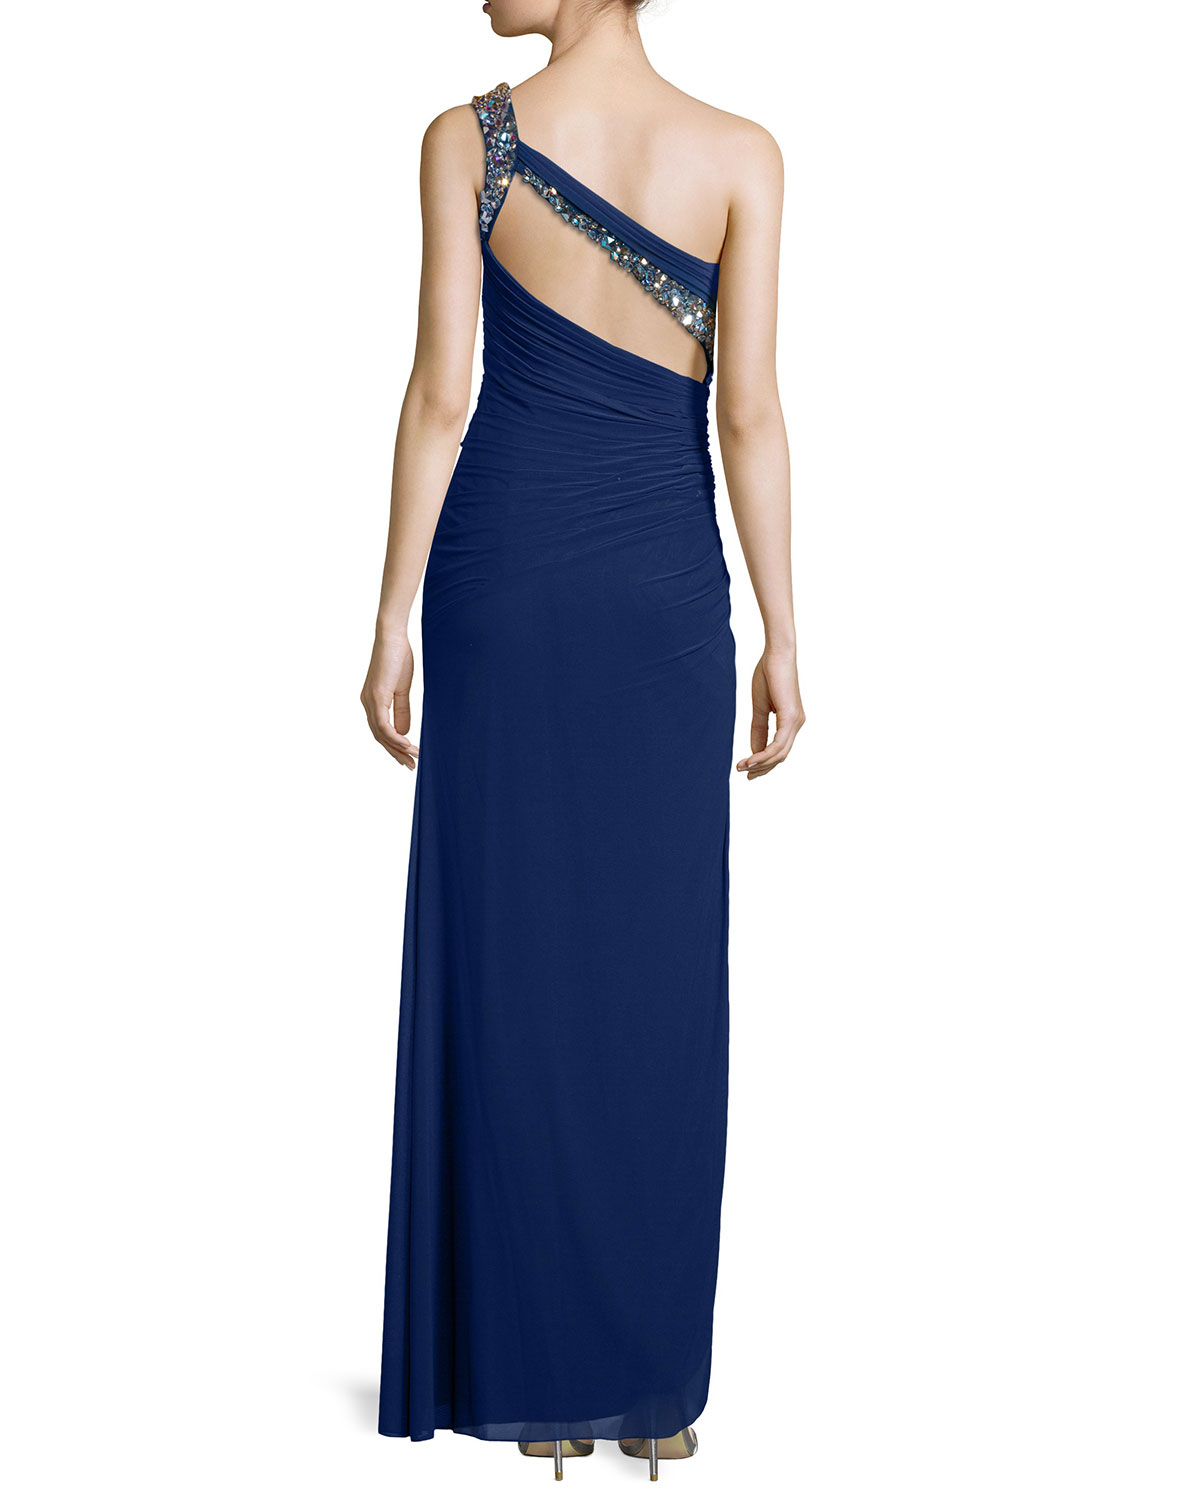 Opinion La femme one shoulder dress can